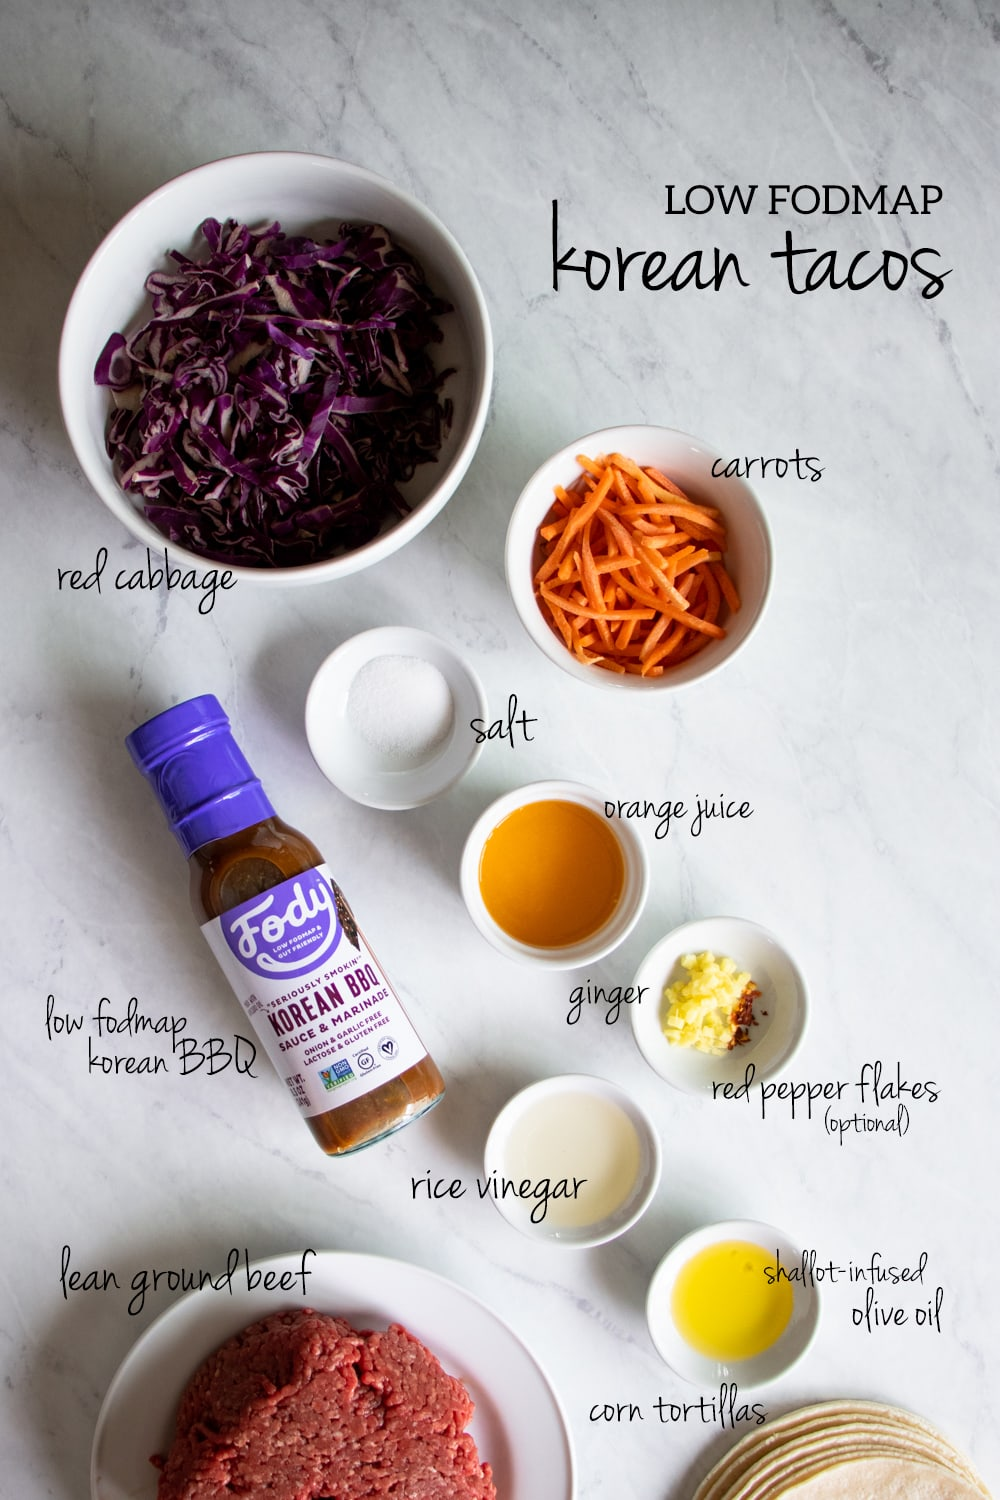 Ingredients needed to make low FODMAP Korean tacos